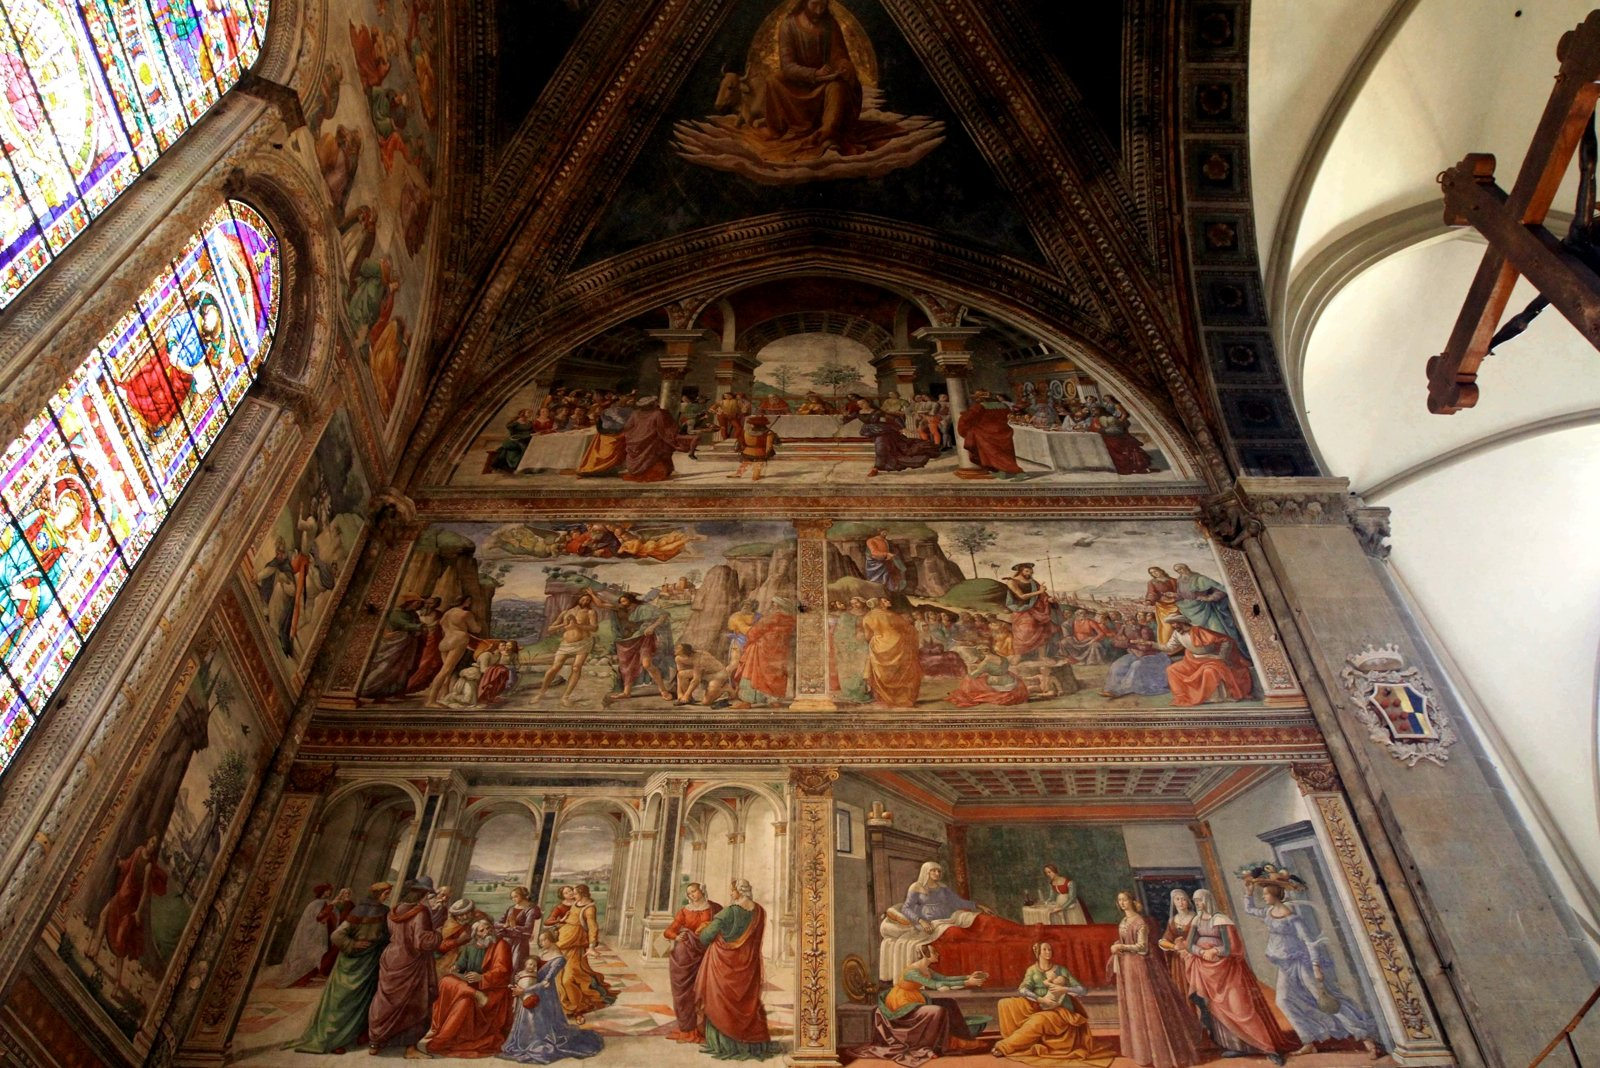 How to look at the frescoes in the church of Santa Maria Novella in Florence